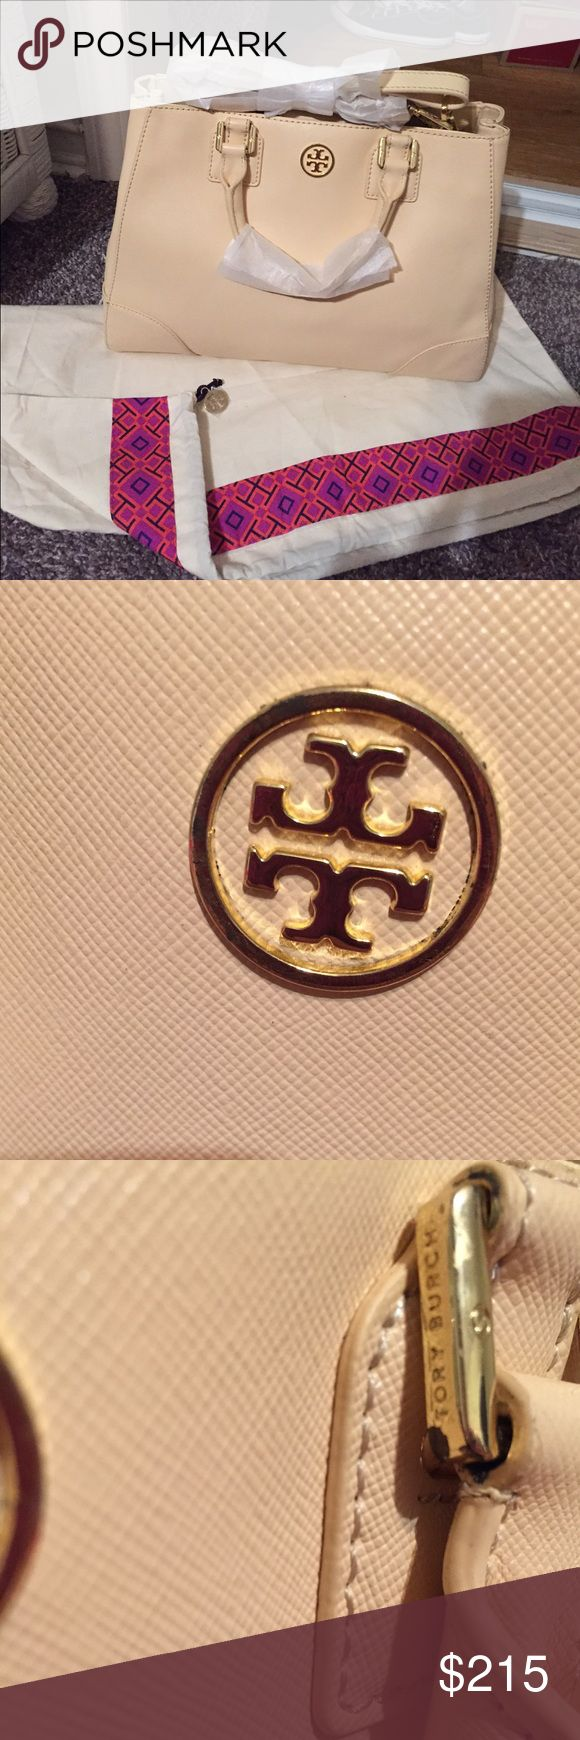 Tory Burch -2010 Collection Triangle Tote.  -There are creases in bottom and sides but not noticeable when carried. -Hardware has scratches. -Hardware has discoloration -Exterior and interior are clean. -Never used  Material is coated canvas and PVC. Length 13.5 inches. Height 9 inches. Depth 5 inches. Originally $525 plus tax.  PRICE FIRM. Ships within 1 to 2  business days. Tory Burch Bags Crossbody Bags